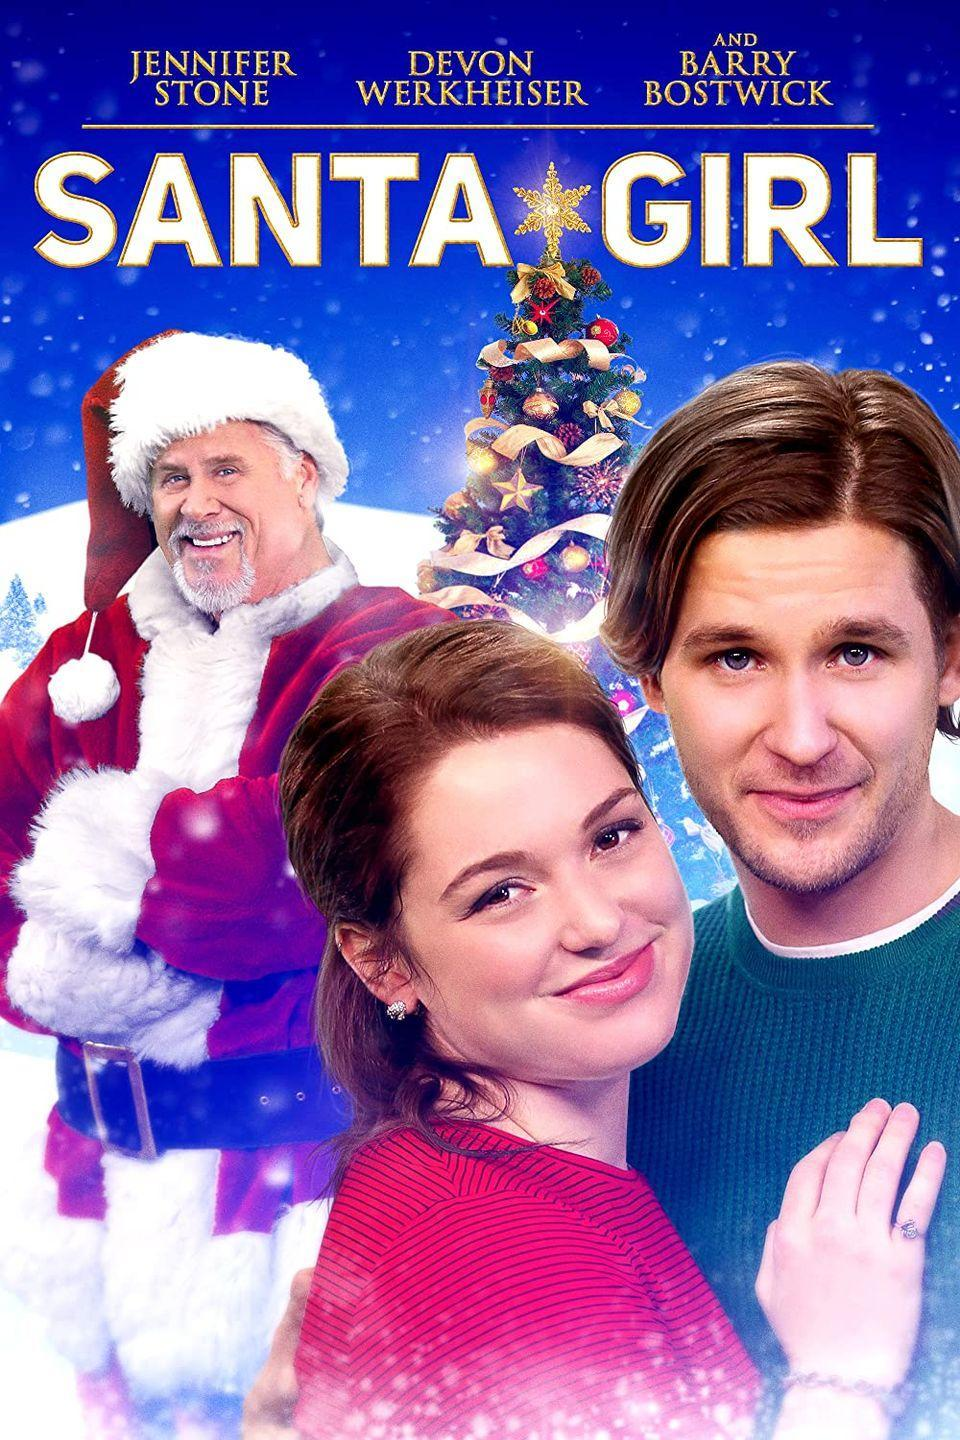 """<p>Think the holidays at your house are awkward? Imagine if you're Santa's daughter, Cassie, who has just left home for the first time to go to college, where she's fallen in love with someone who is definitely not the son of Jack Frost, the person she's supposed to marry before taking over the family business. Things are about to get a little complicated, to say the least.</p><p><a class=""""link rapid-noclick-resp"""" href=""""https://www.netflix.com/title/81152930"""" rel=""""nofollow noopener"""" target=""""_blank"""" data-ylk=""""slk:Watch Now"""">Watch Now</a></p>"""